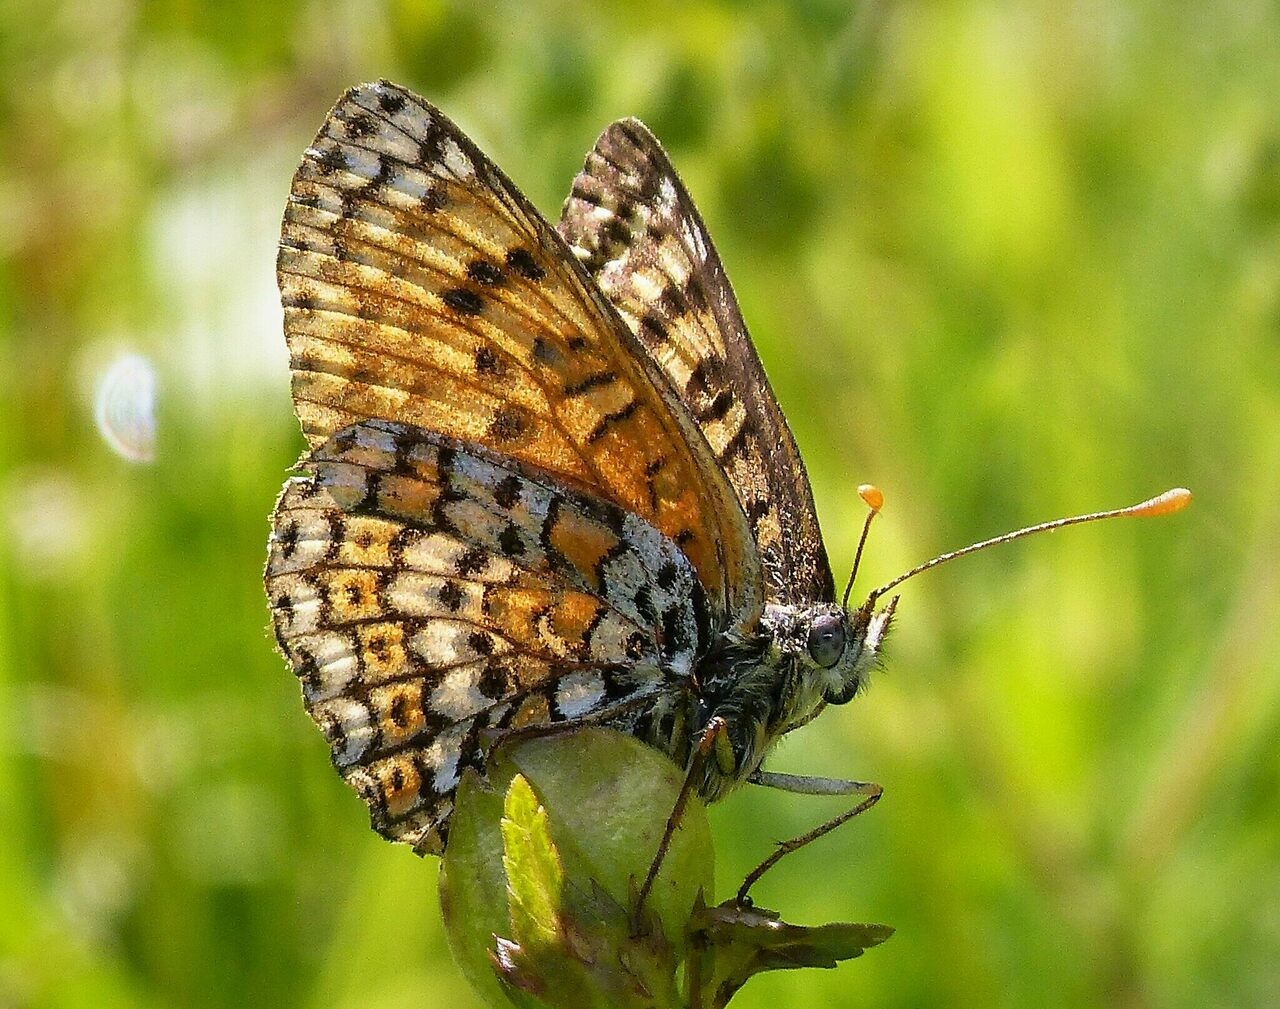 The Glanville fritillary is common throughout most of Europe and parts of northern Africa.